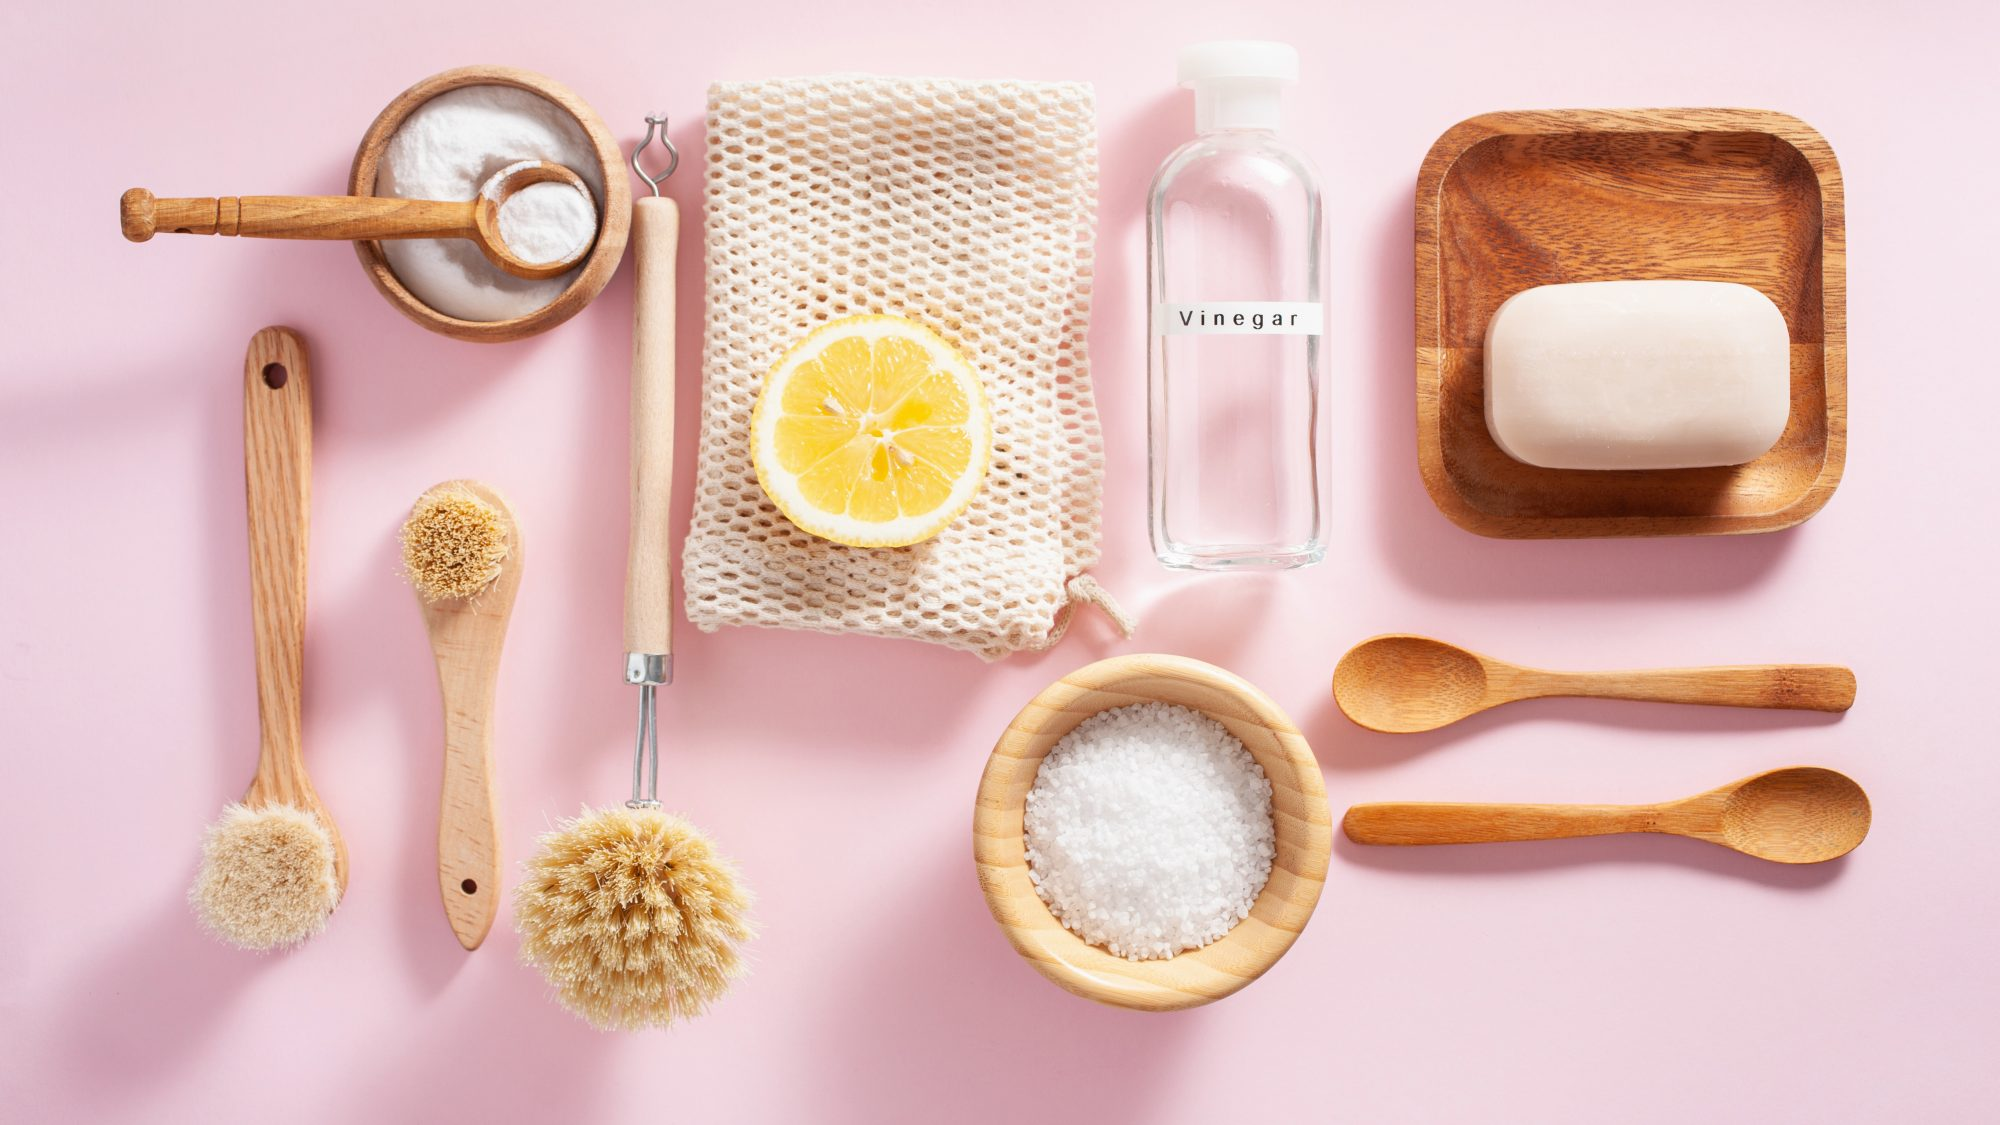 Homemade, natural cleaning solution recipes